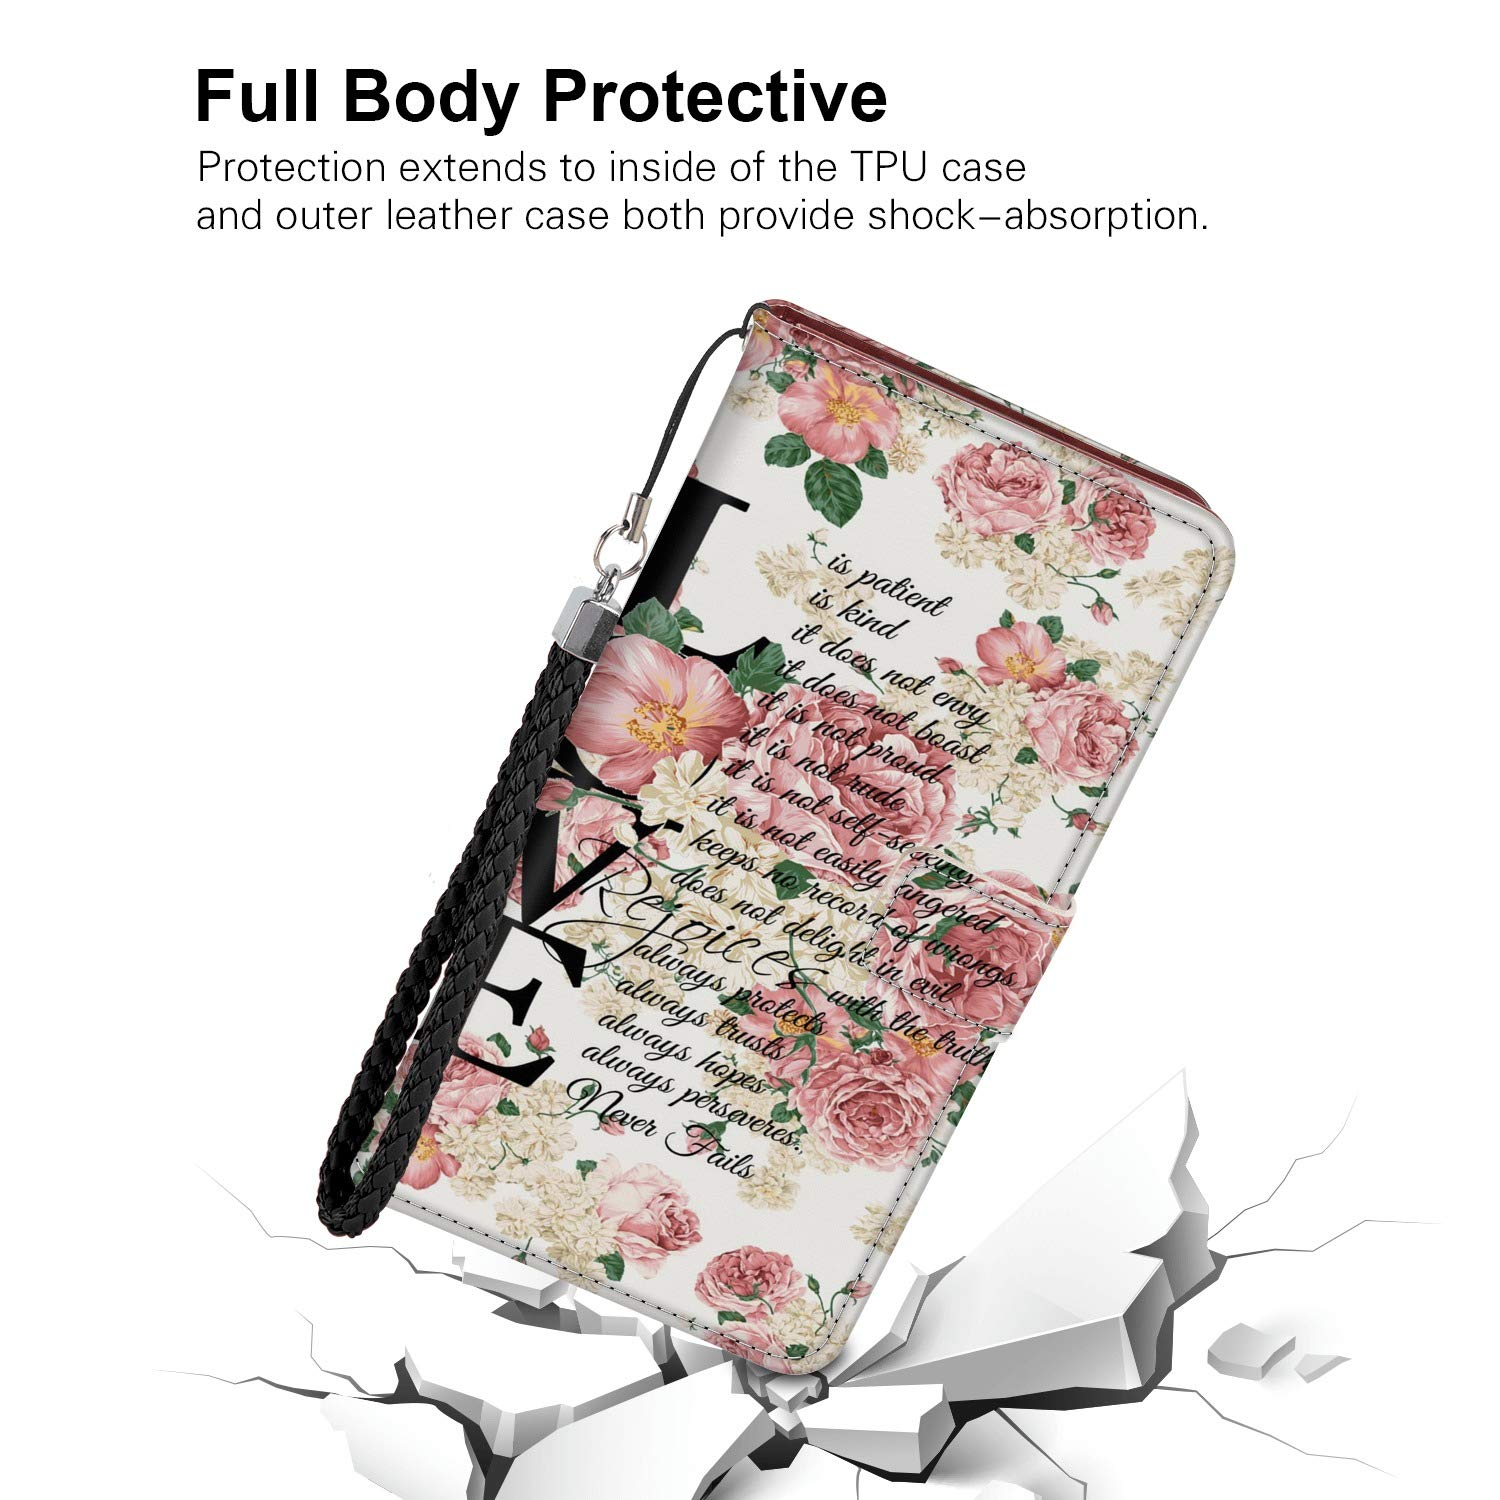 ee8dabcada139 Amazon.com: Floral Love iPhone Xr Wallet Case PU Leather Cover and ...